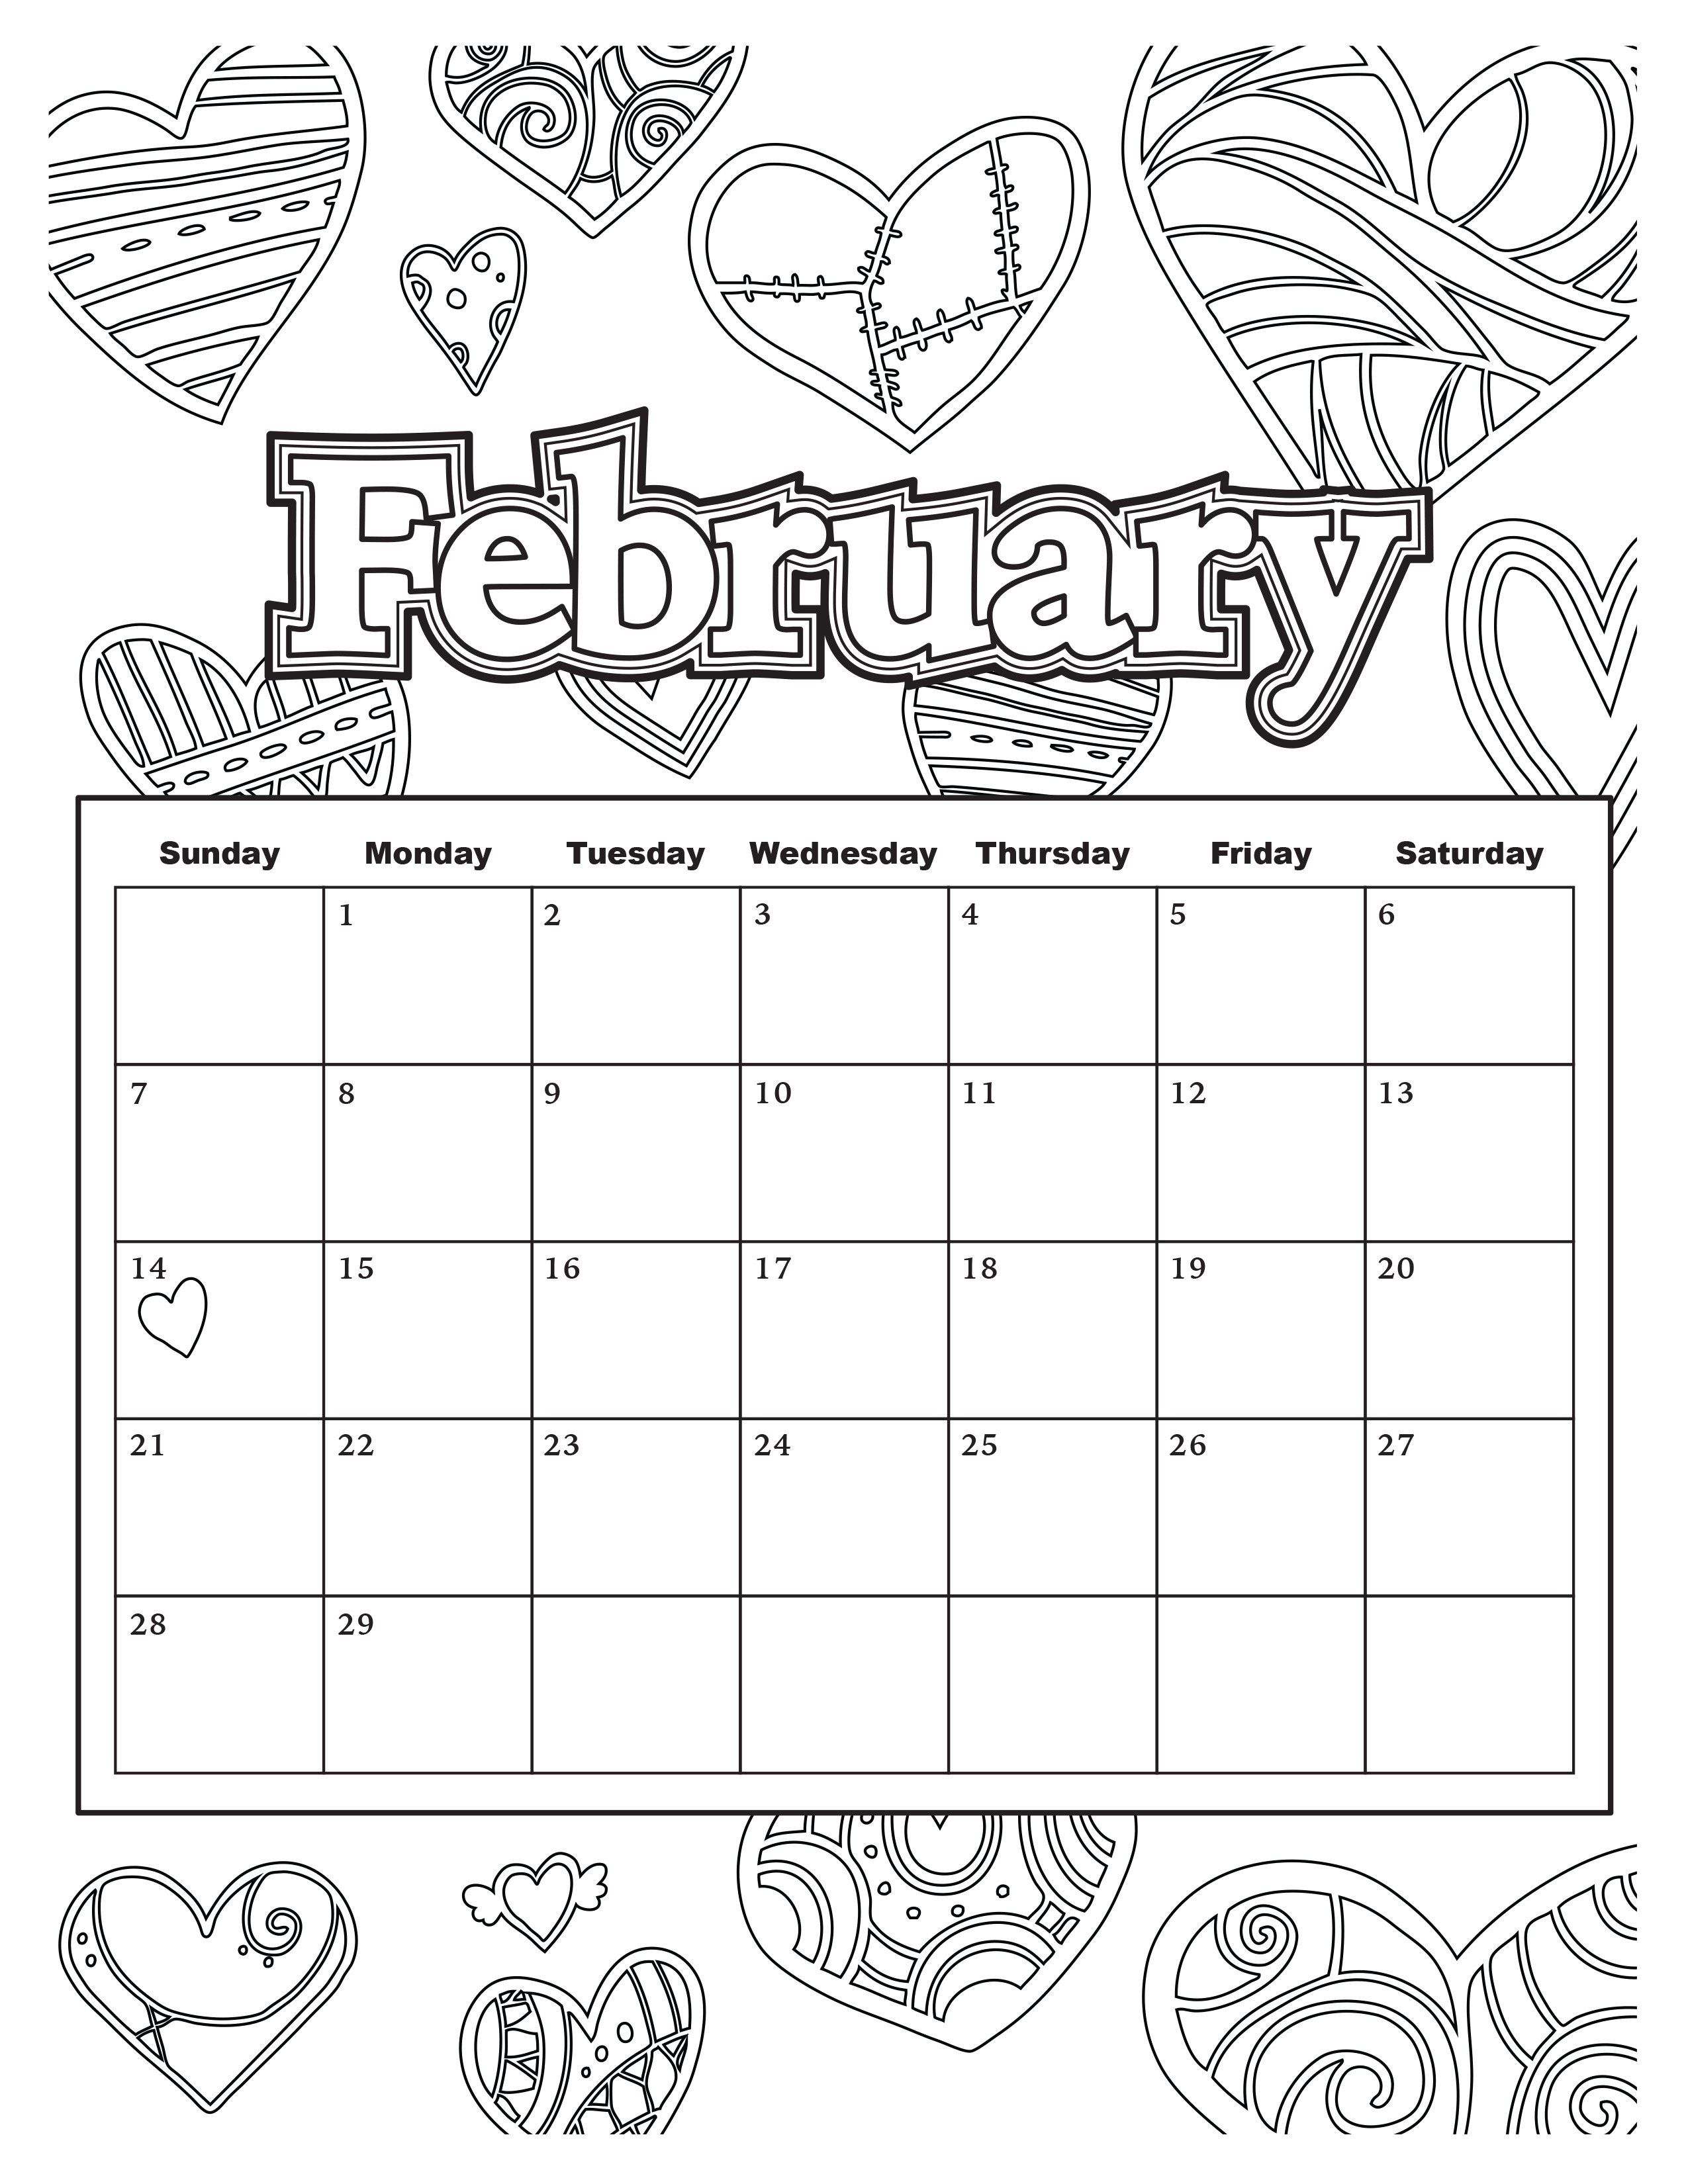 25 Exclusive Image Of February Coloring Pages Kids Calendar